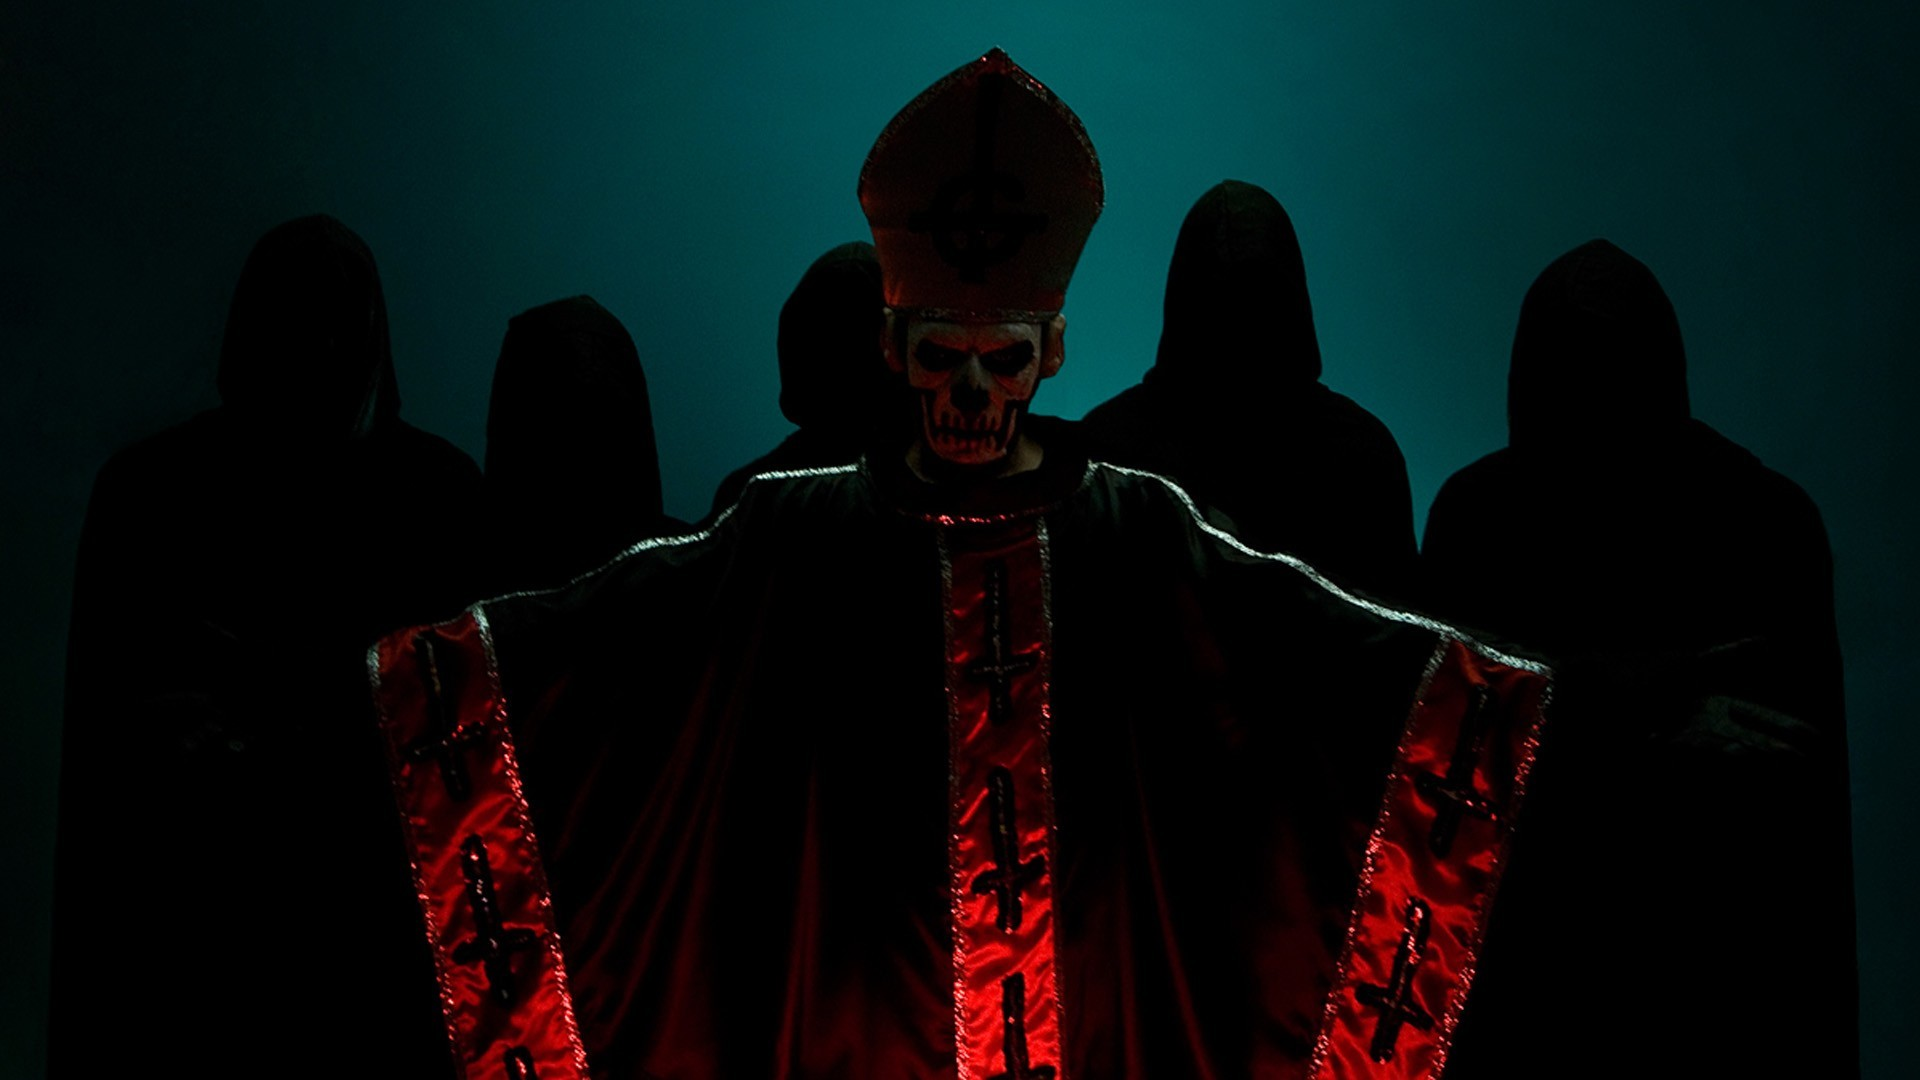 … band ghost pope papa wallpapers …